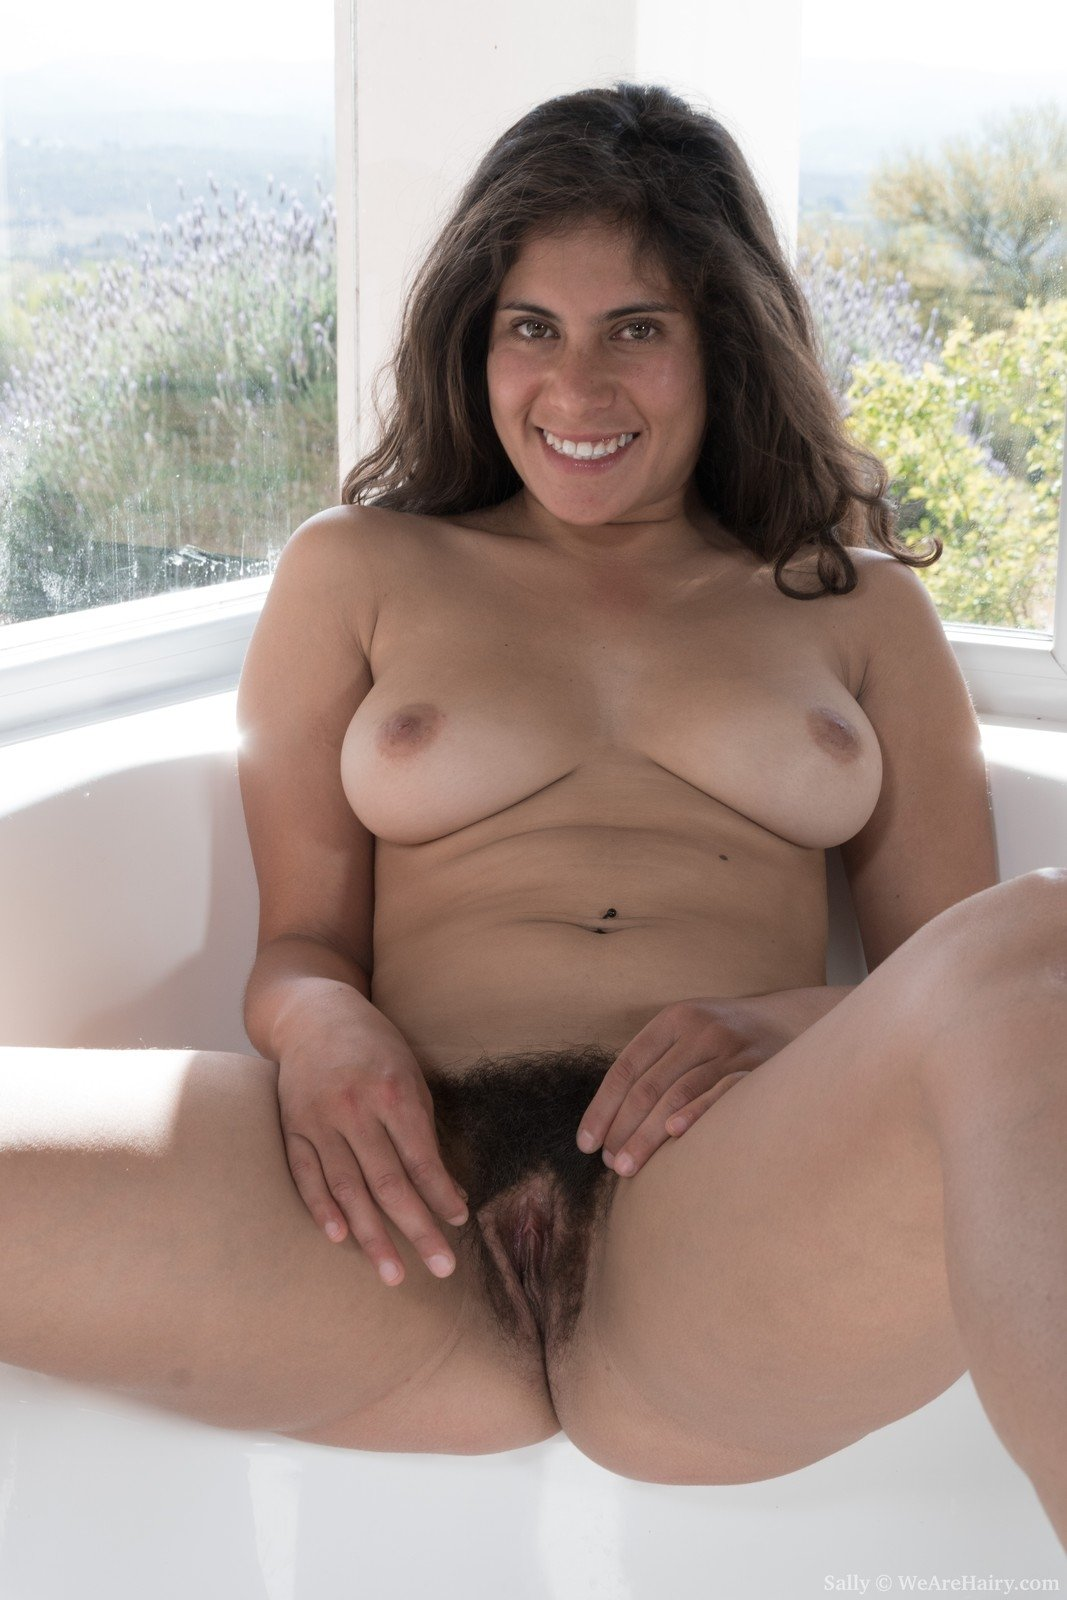 best of her hairy hole